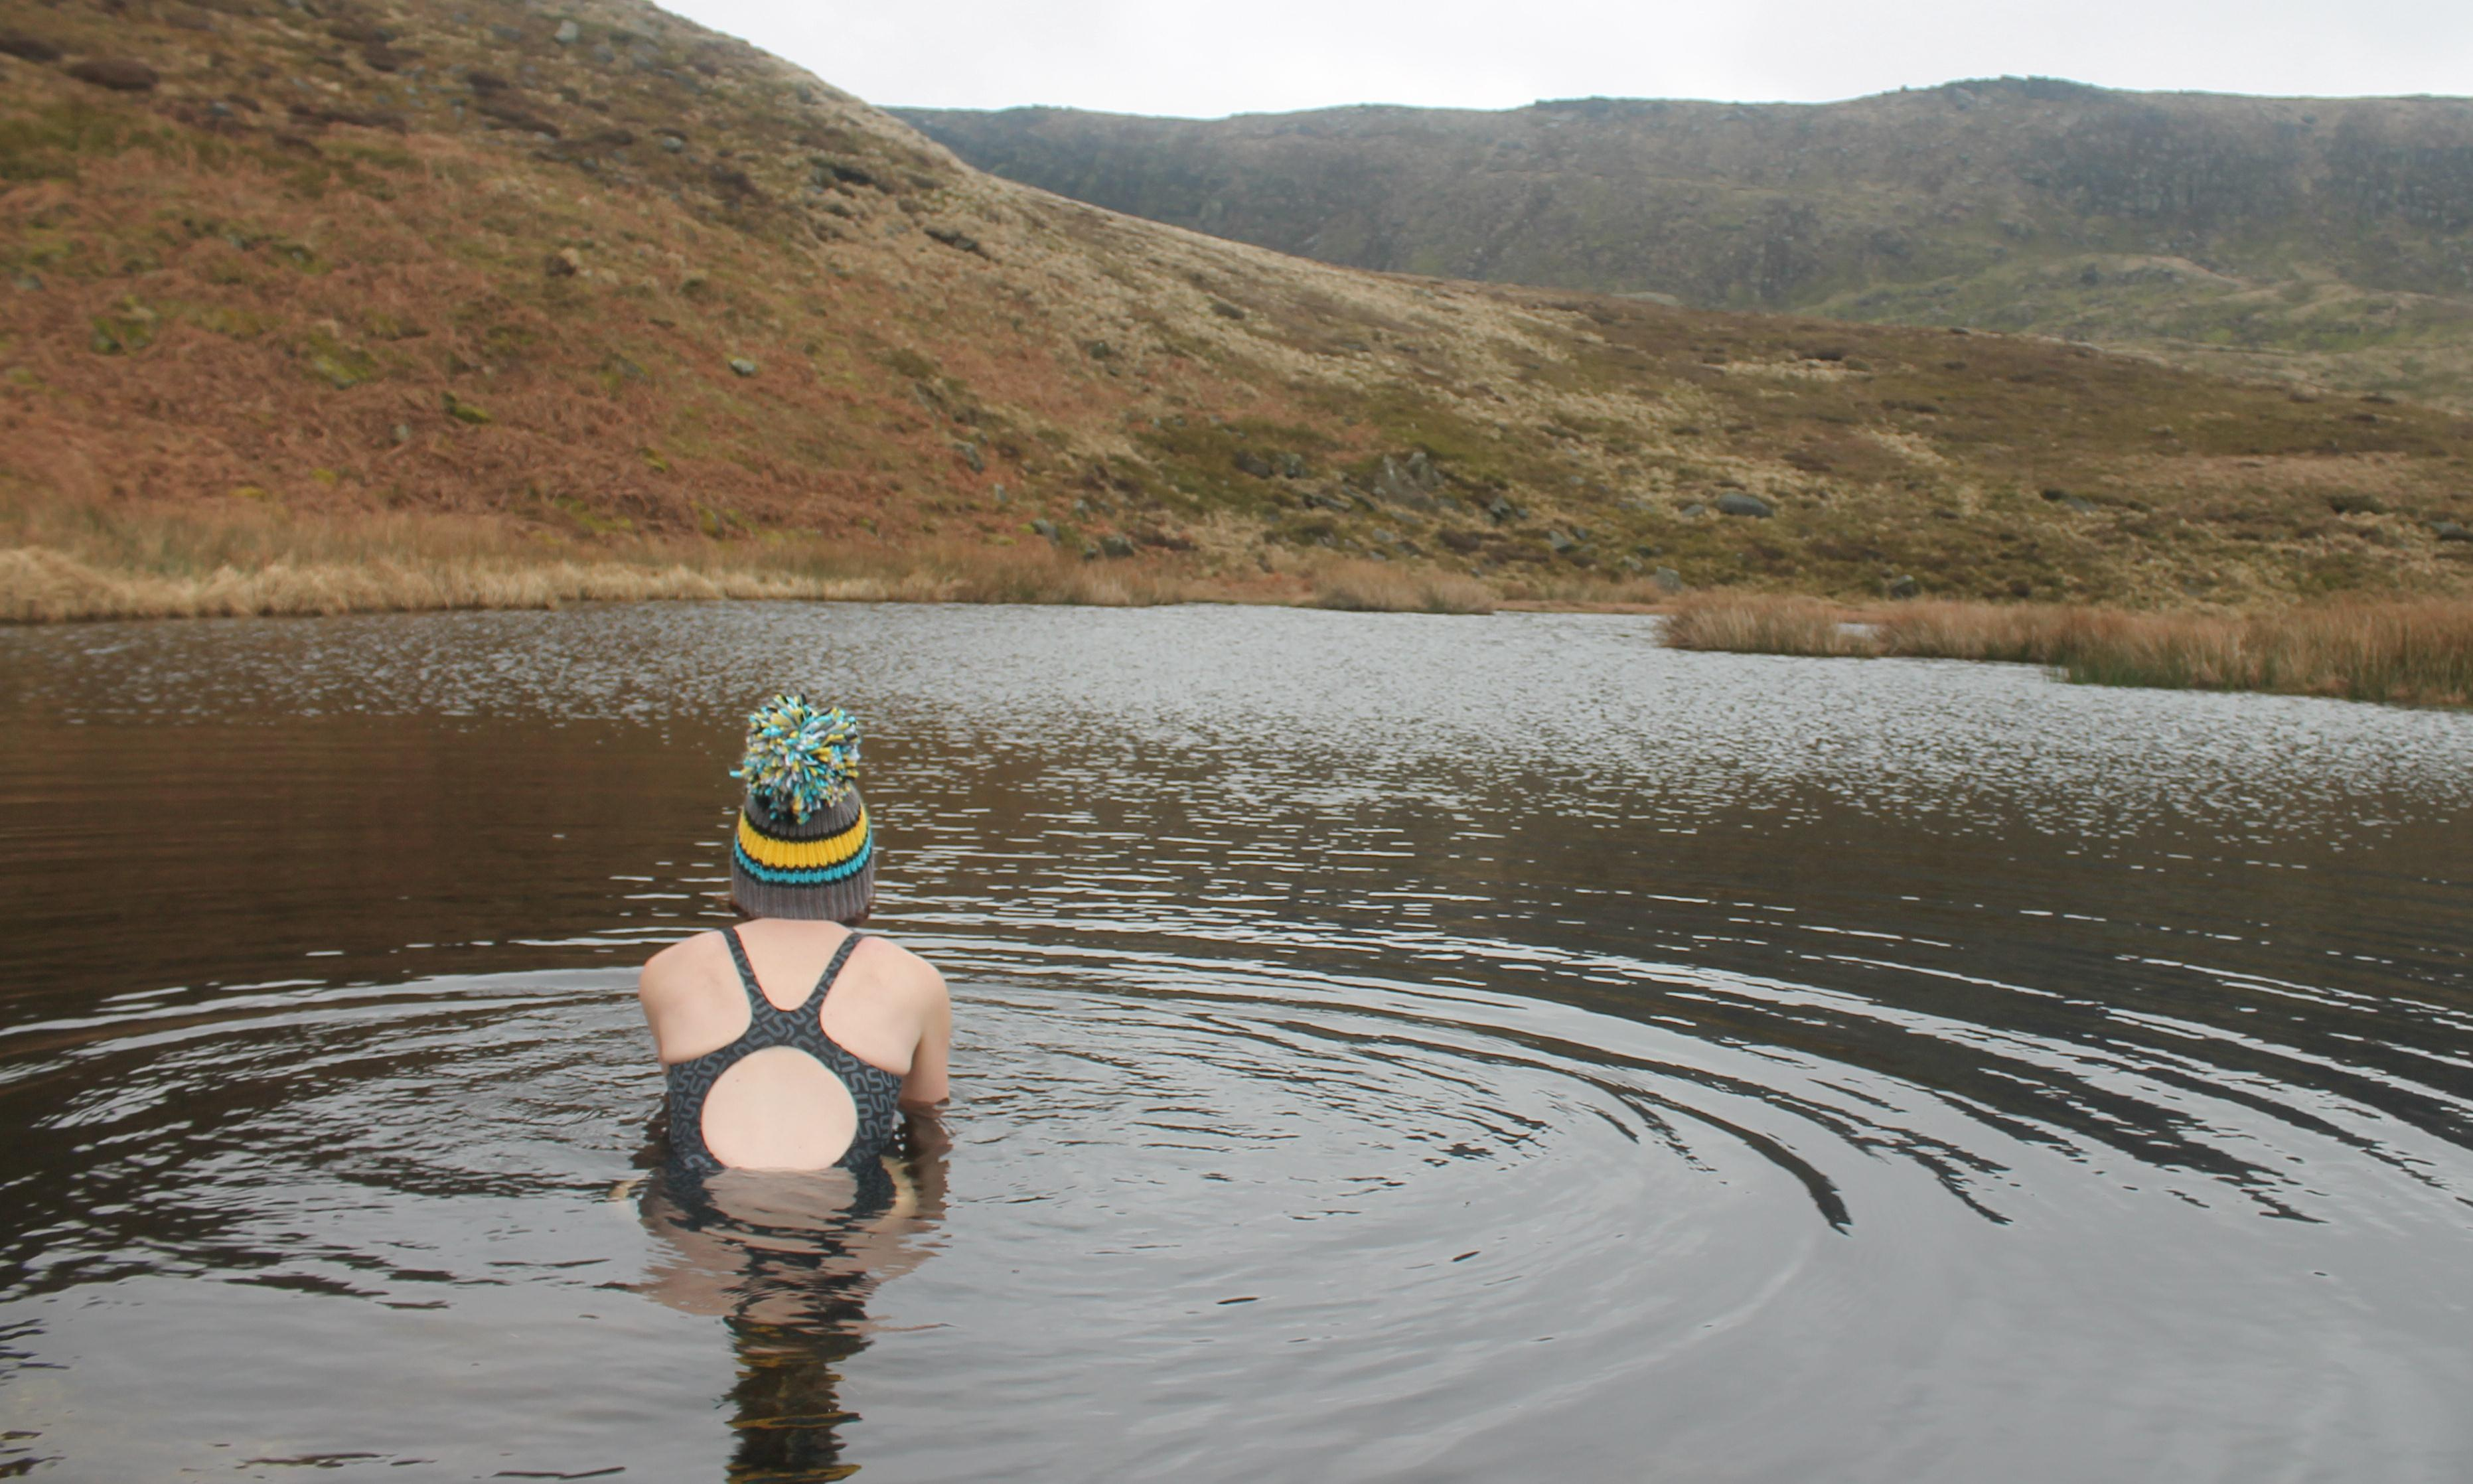 'It's a no-knickers feeling!' The healing power of wild swimming